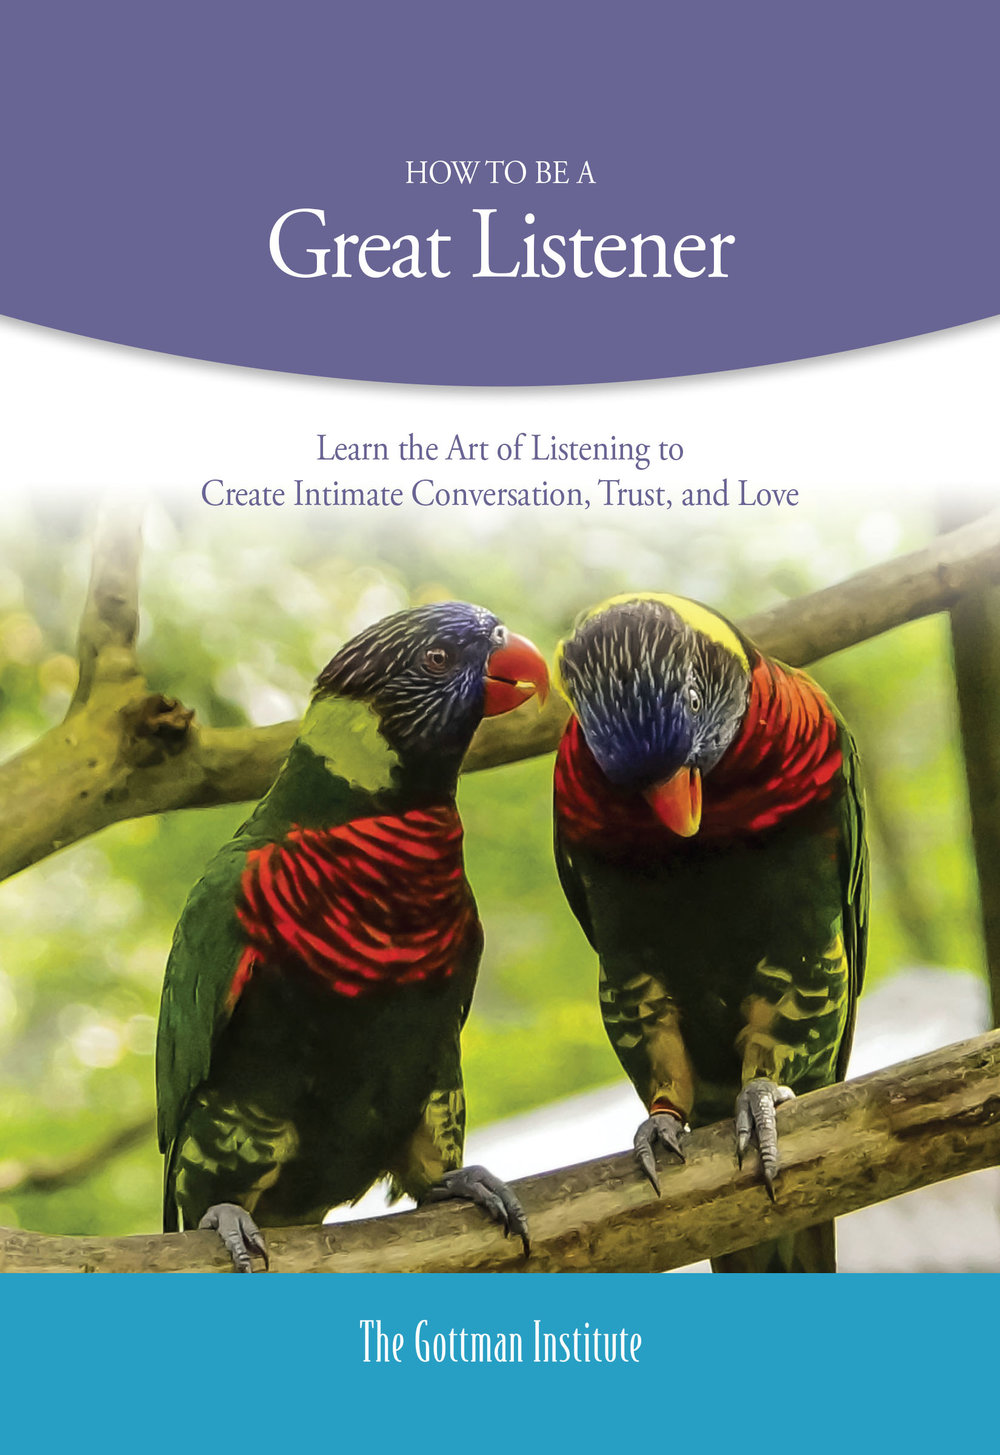 Be a Great Listner - Learn the Art of Listening to Create Intimate Conversation, Trust and Love. Click on image for PDF.